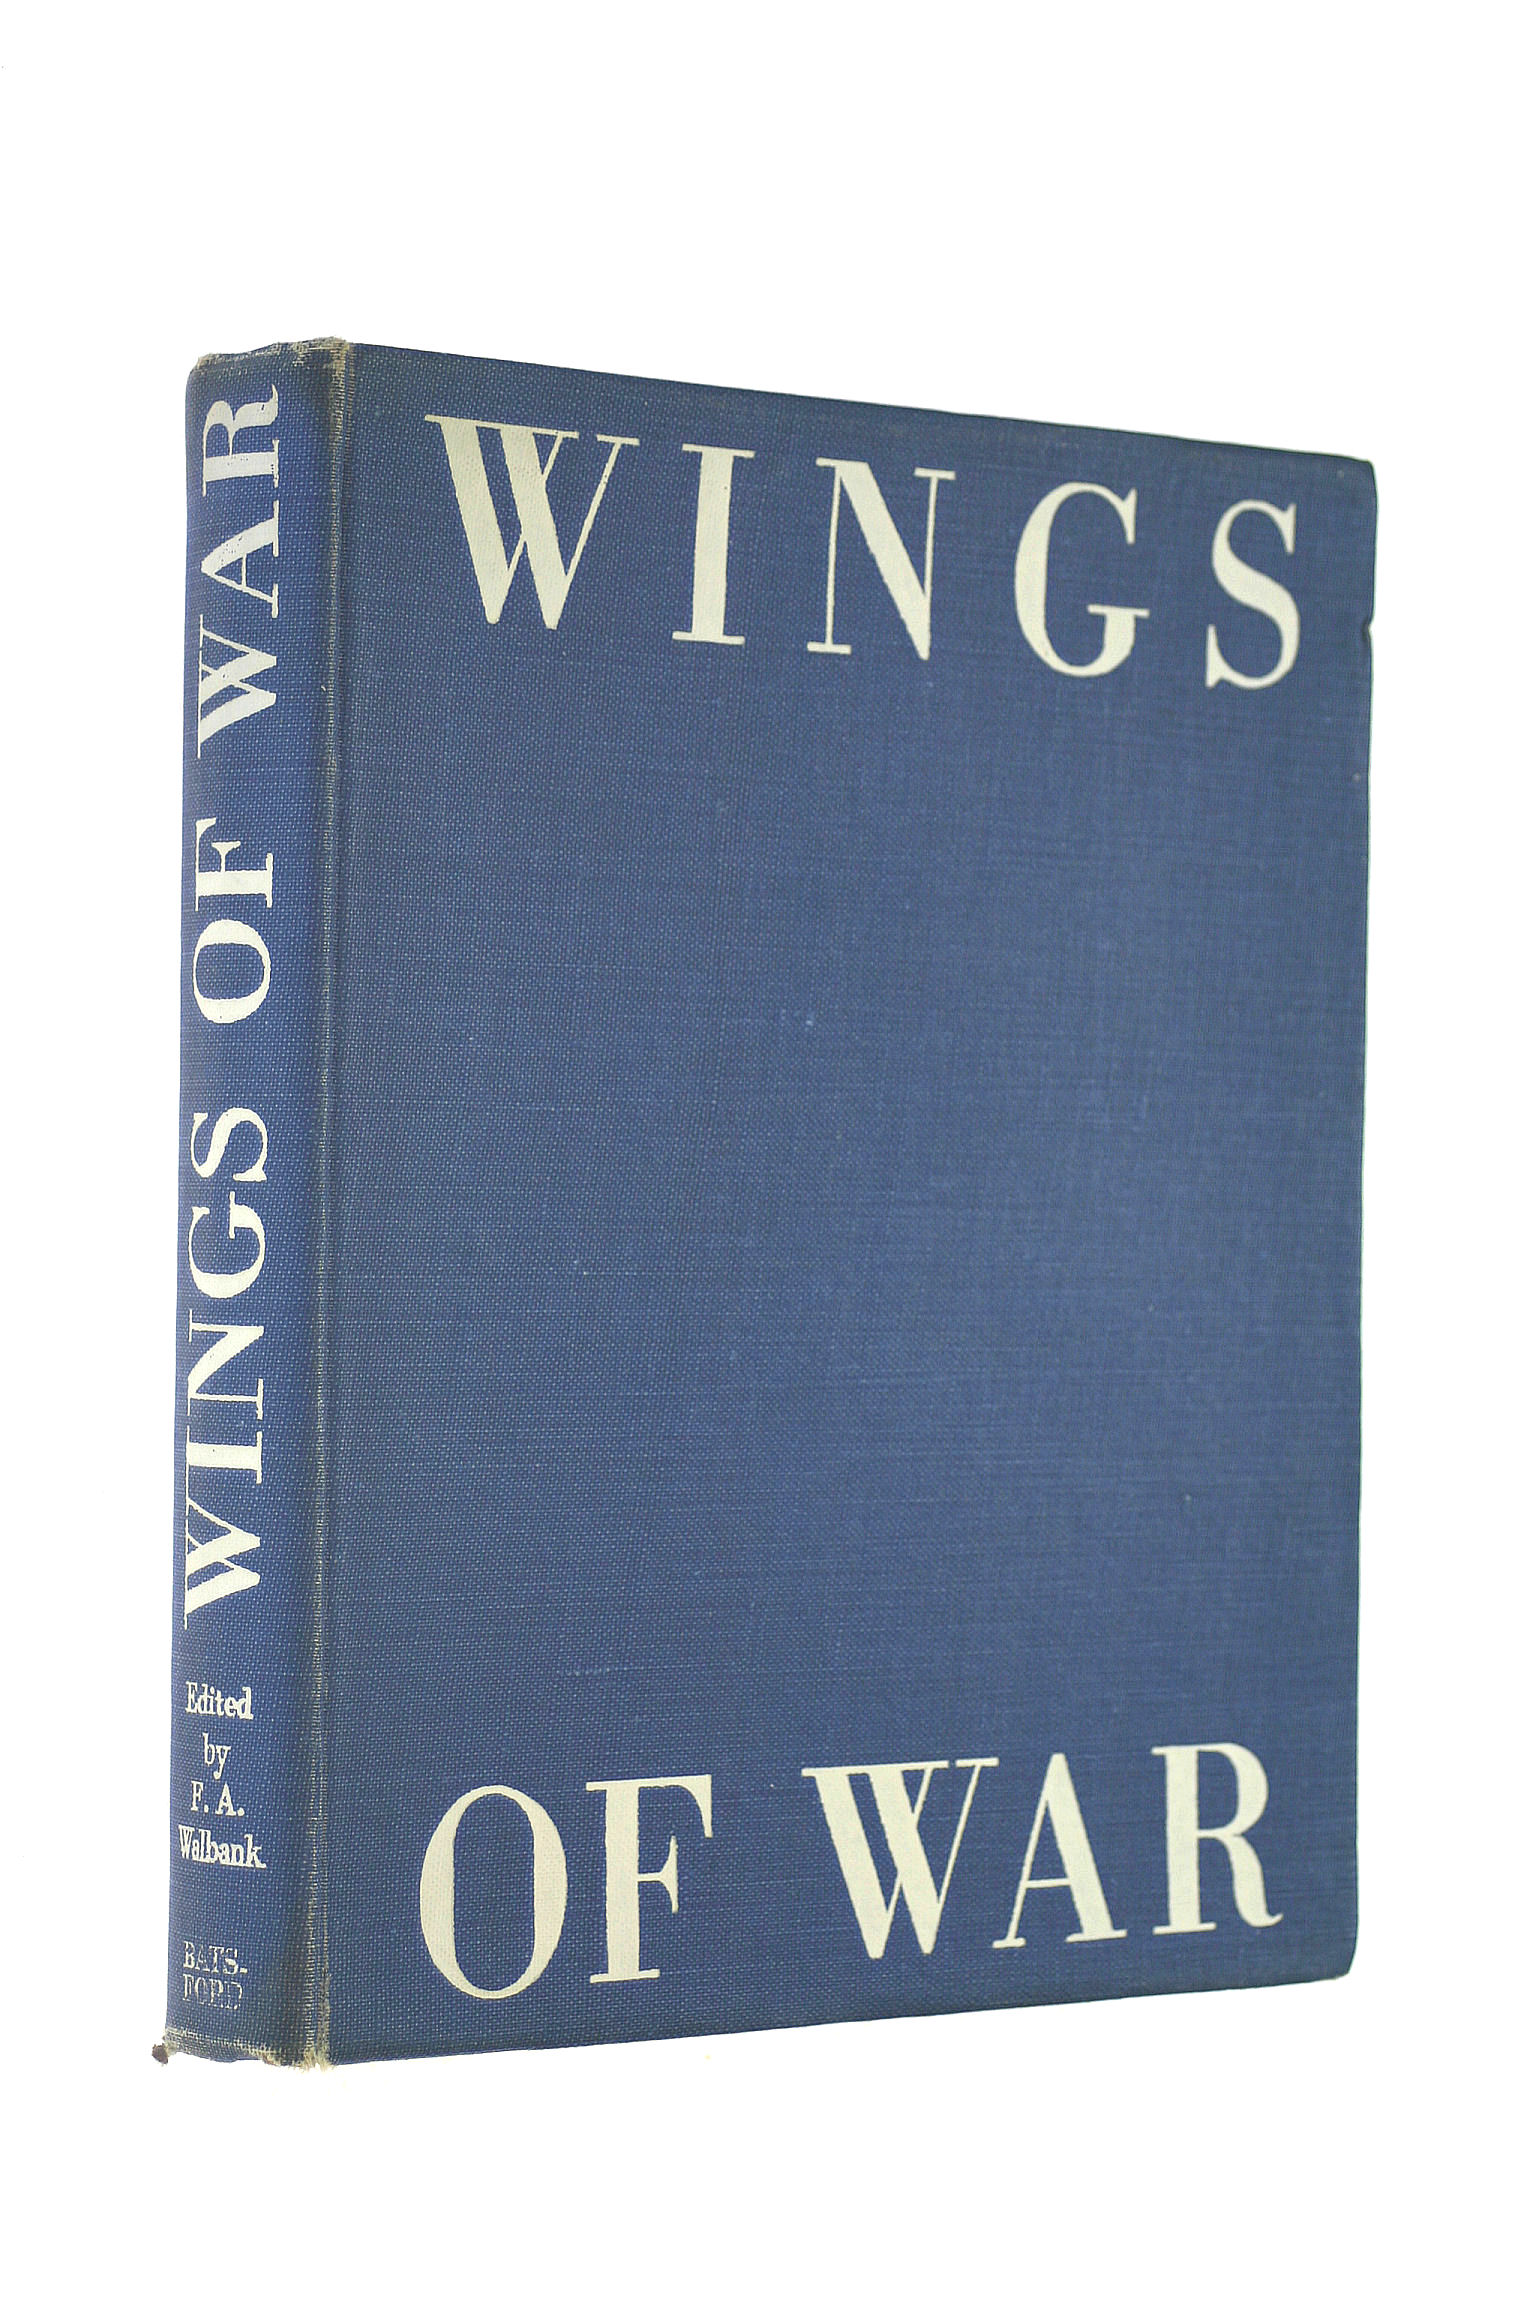 Image for Wings of war: an Air Force anthology